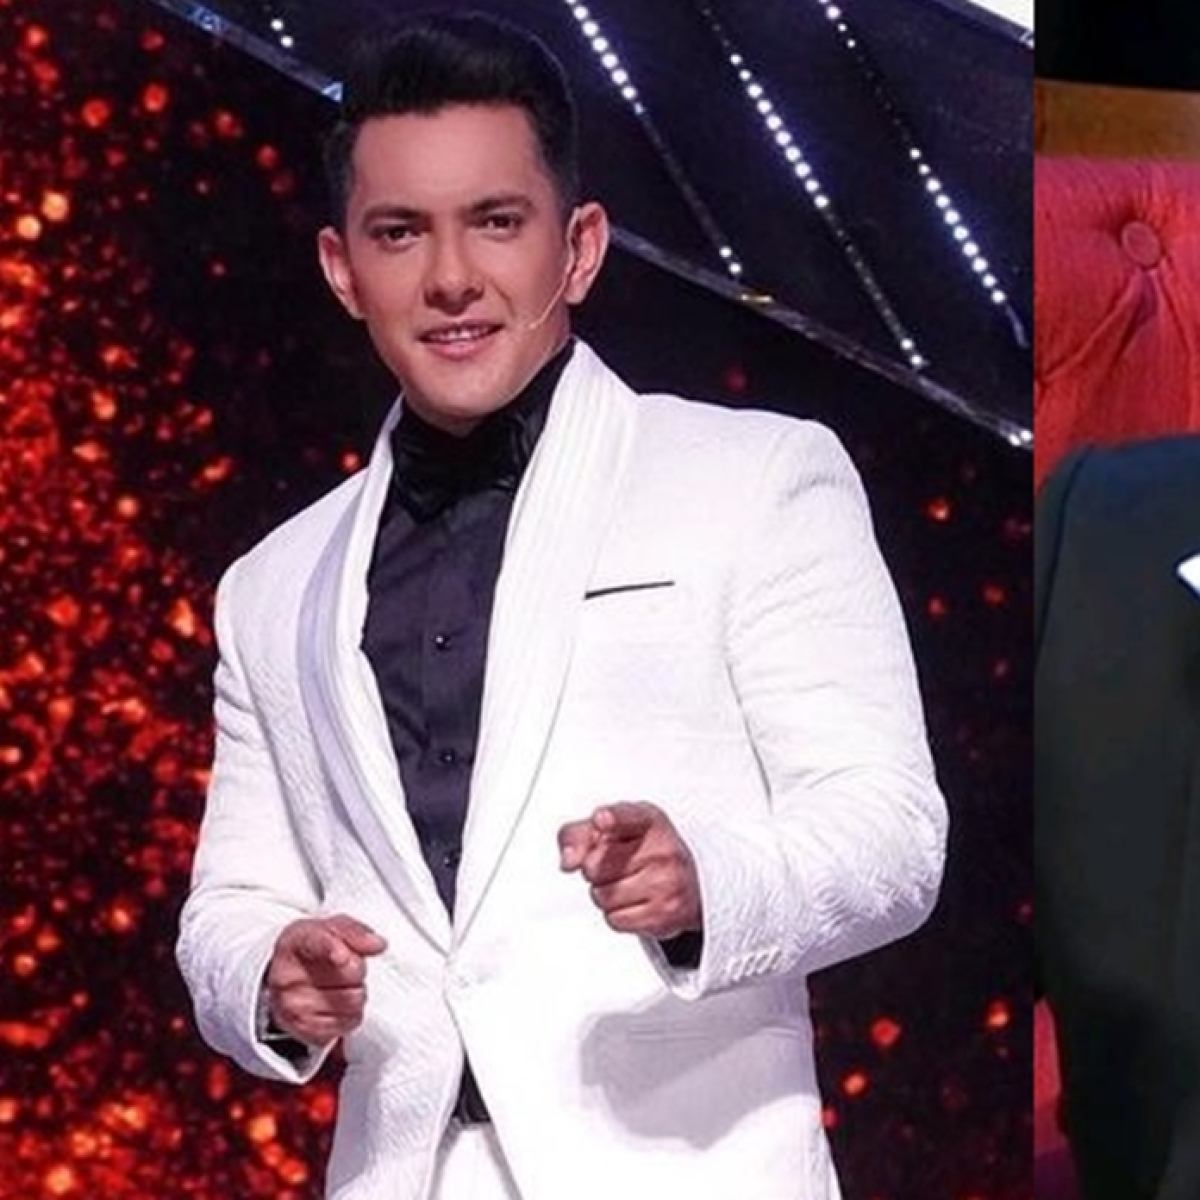 'He could've just told us': 'Indian Idol 12' host Aditya Narayan on Amit Kumar's criticism of Kishore Kumar tribute episode